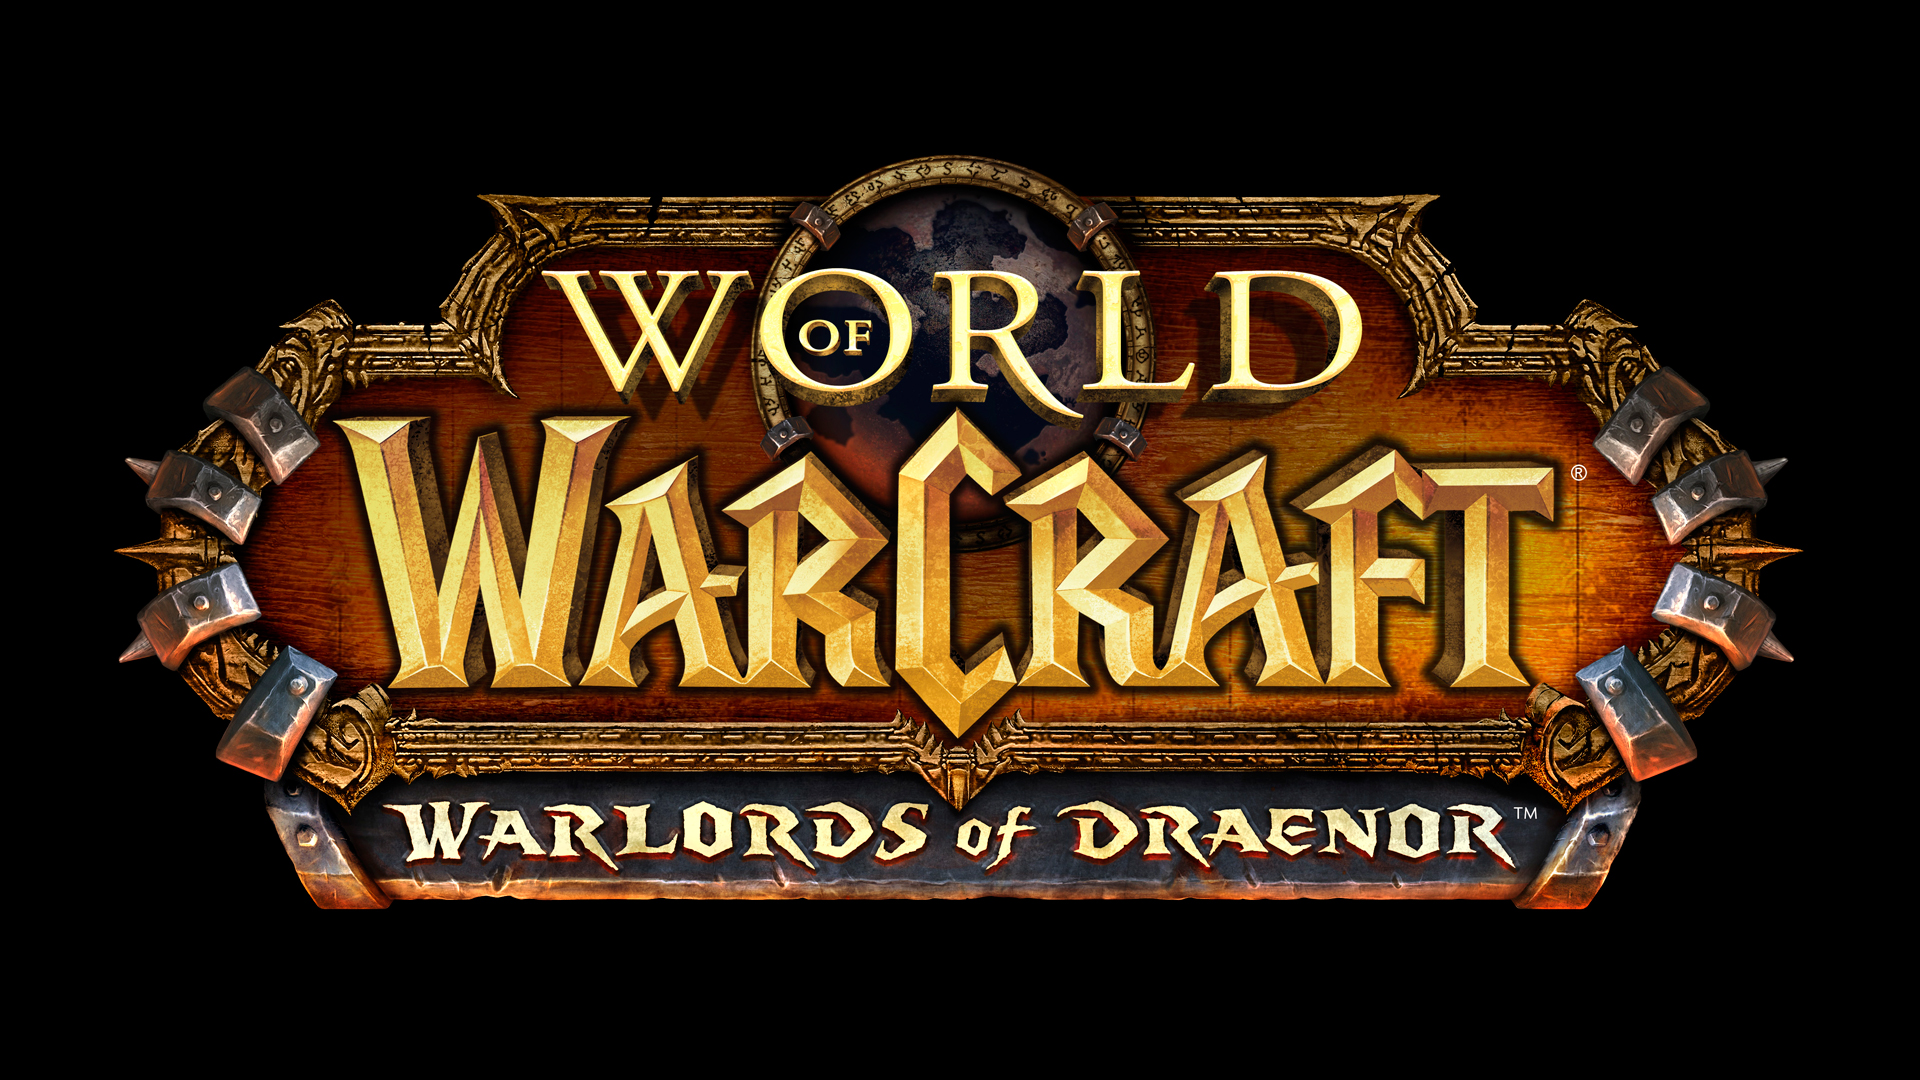 Why Is The World Of Warcraft Battle For Azeroth Logo Blue And Gold